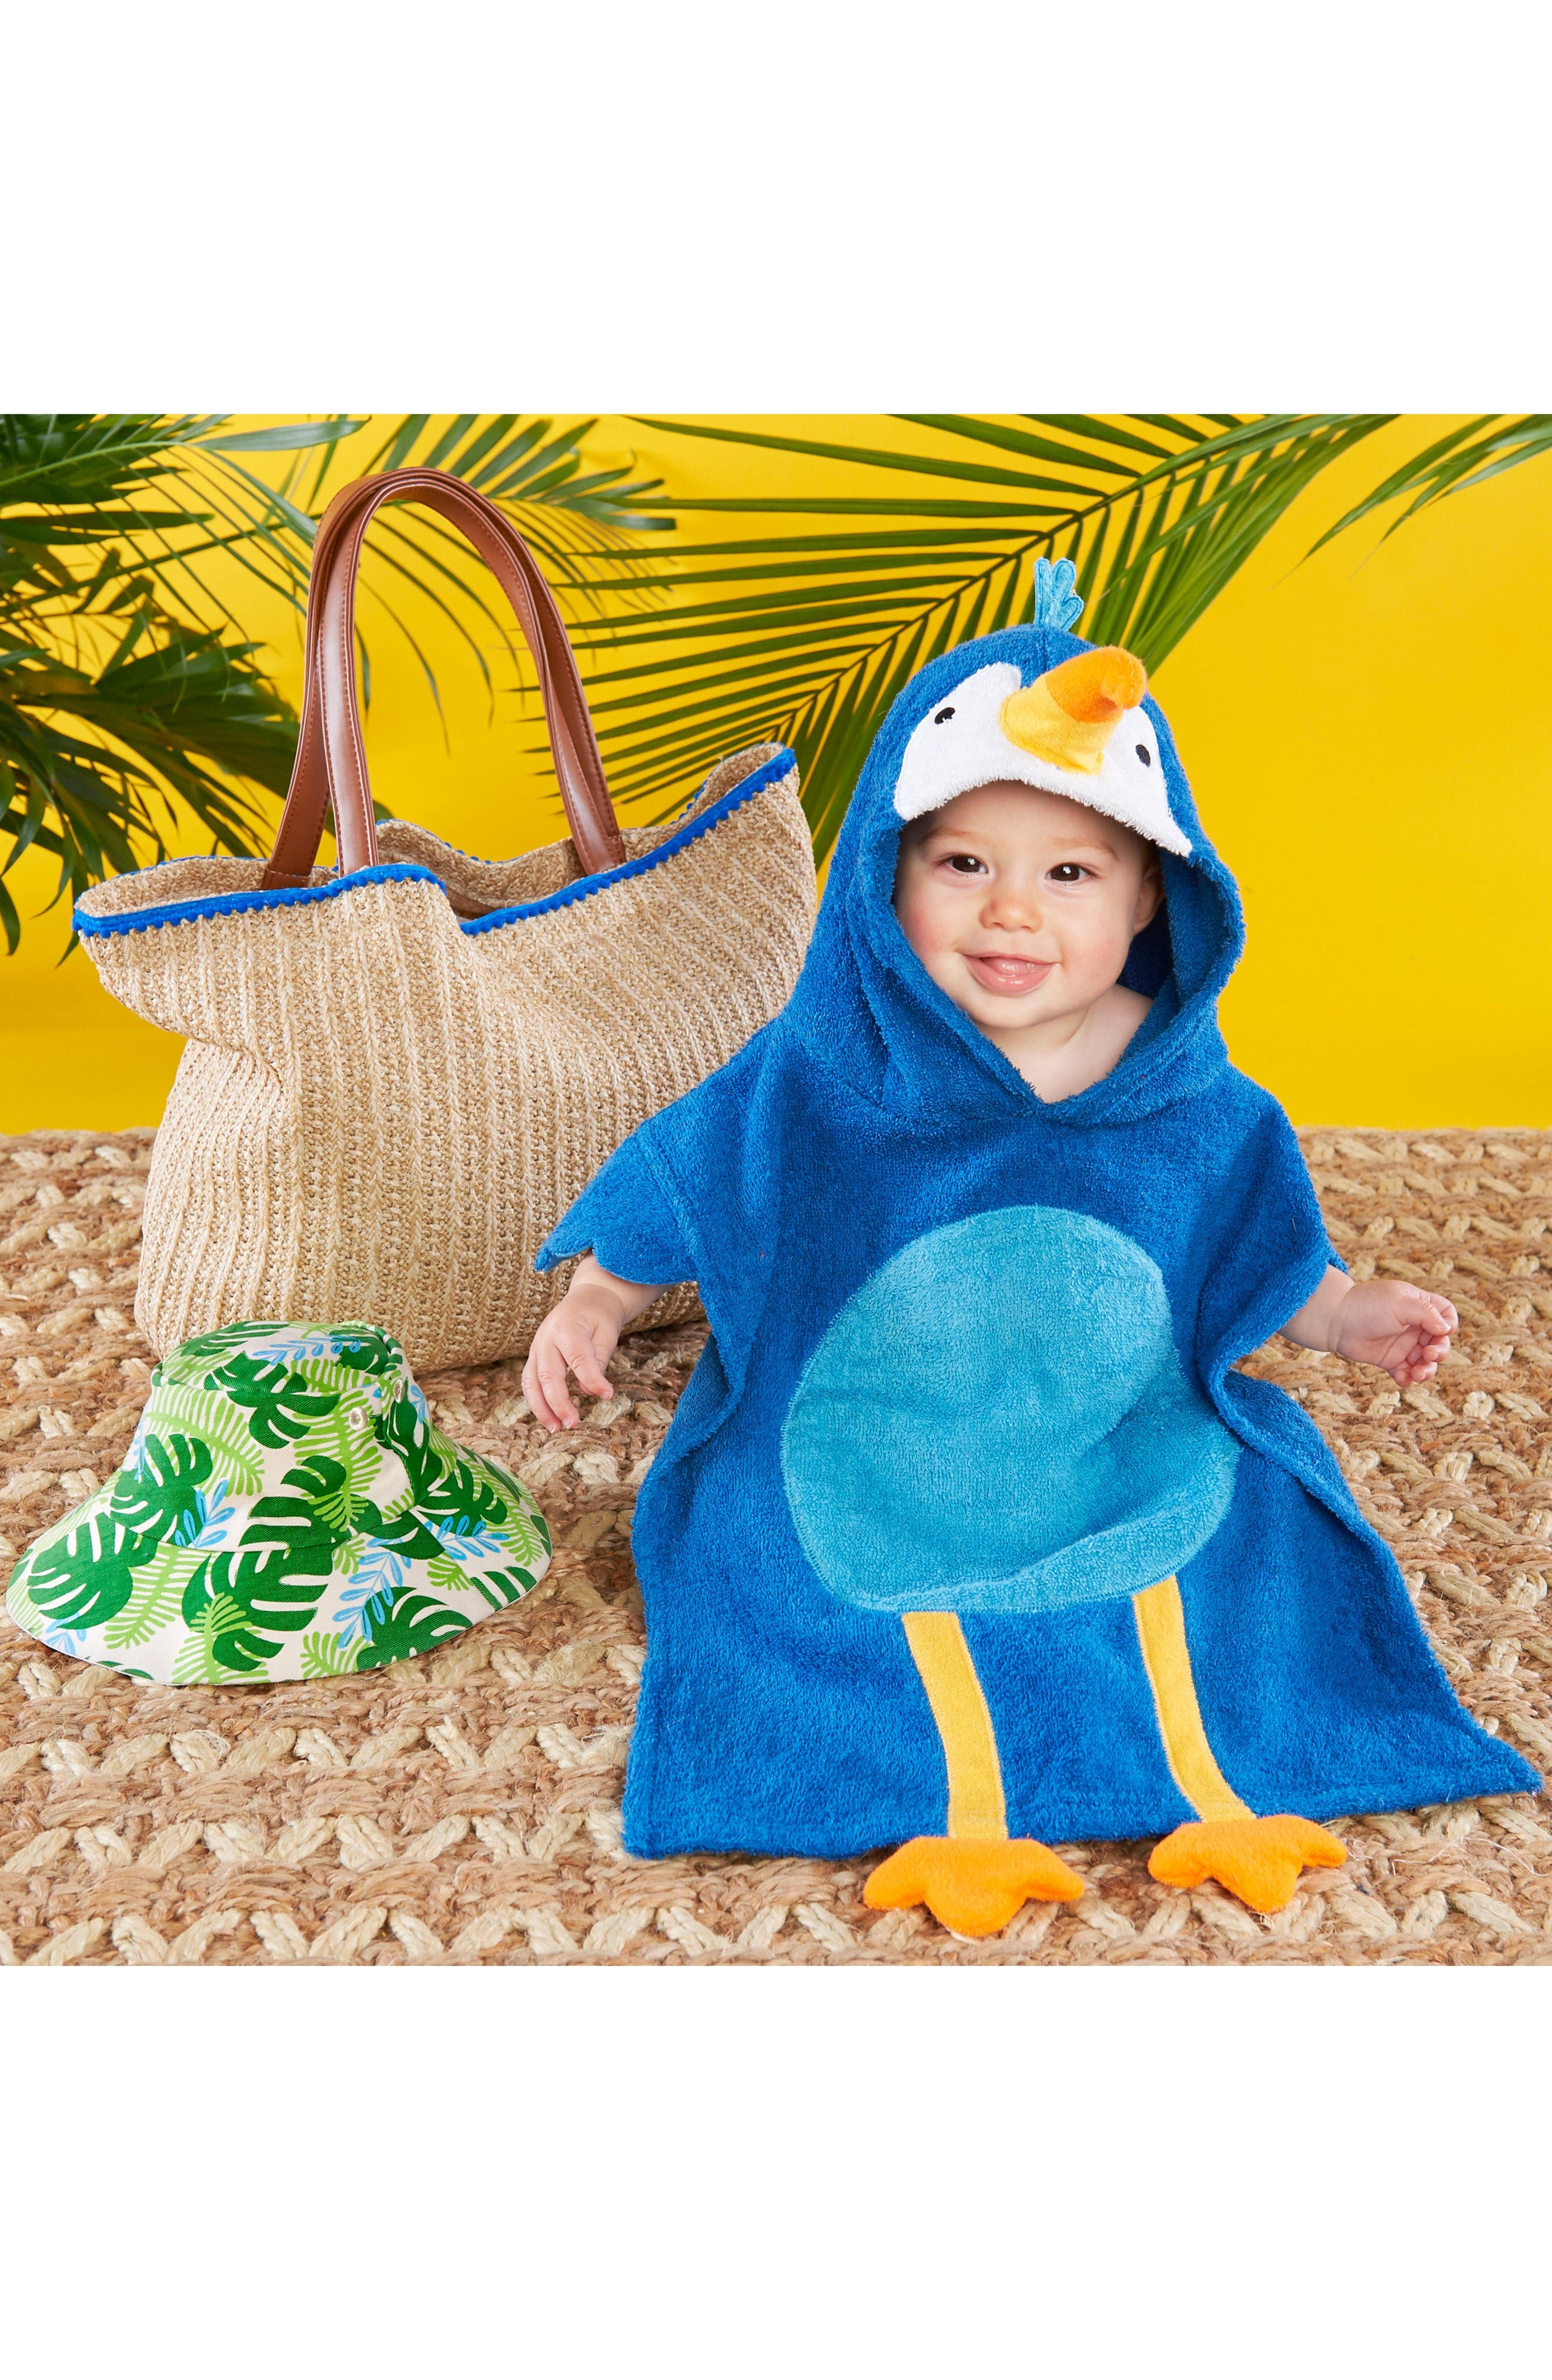 Alternate Image 3  - Baby Aspen Tropical Hooded Towel, Swimsuit, Sun Hat & Tote Set (Baby)